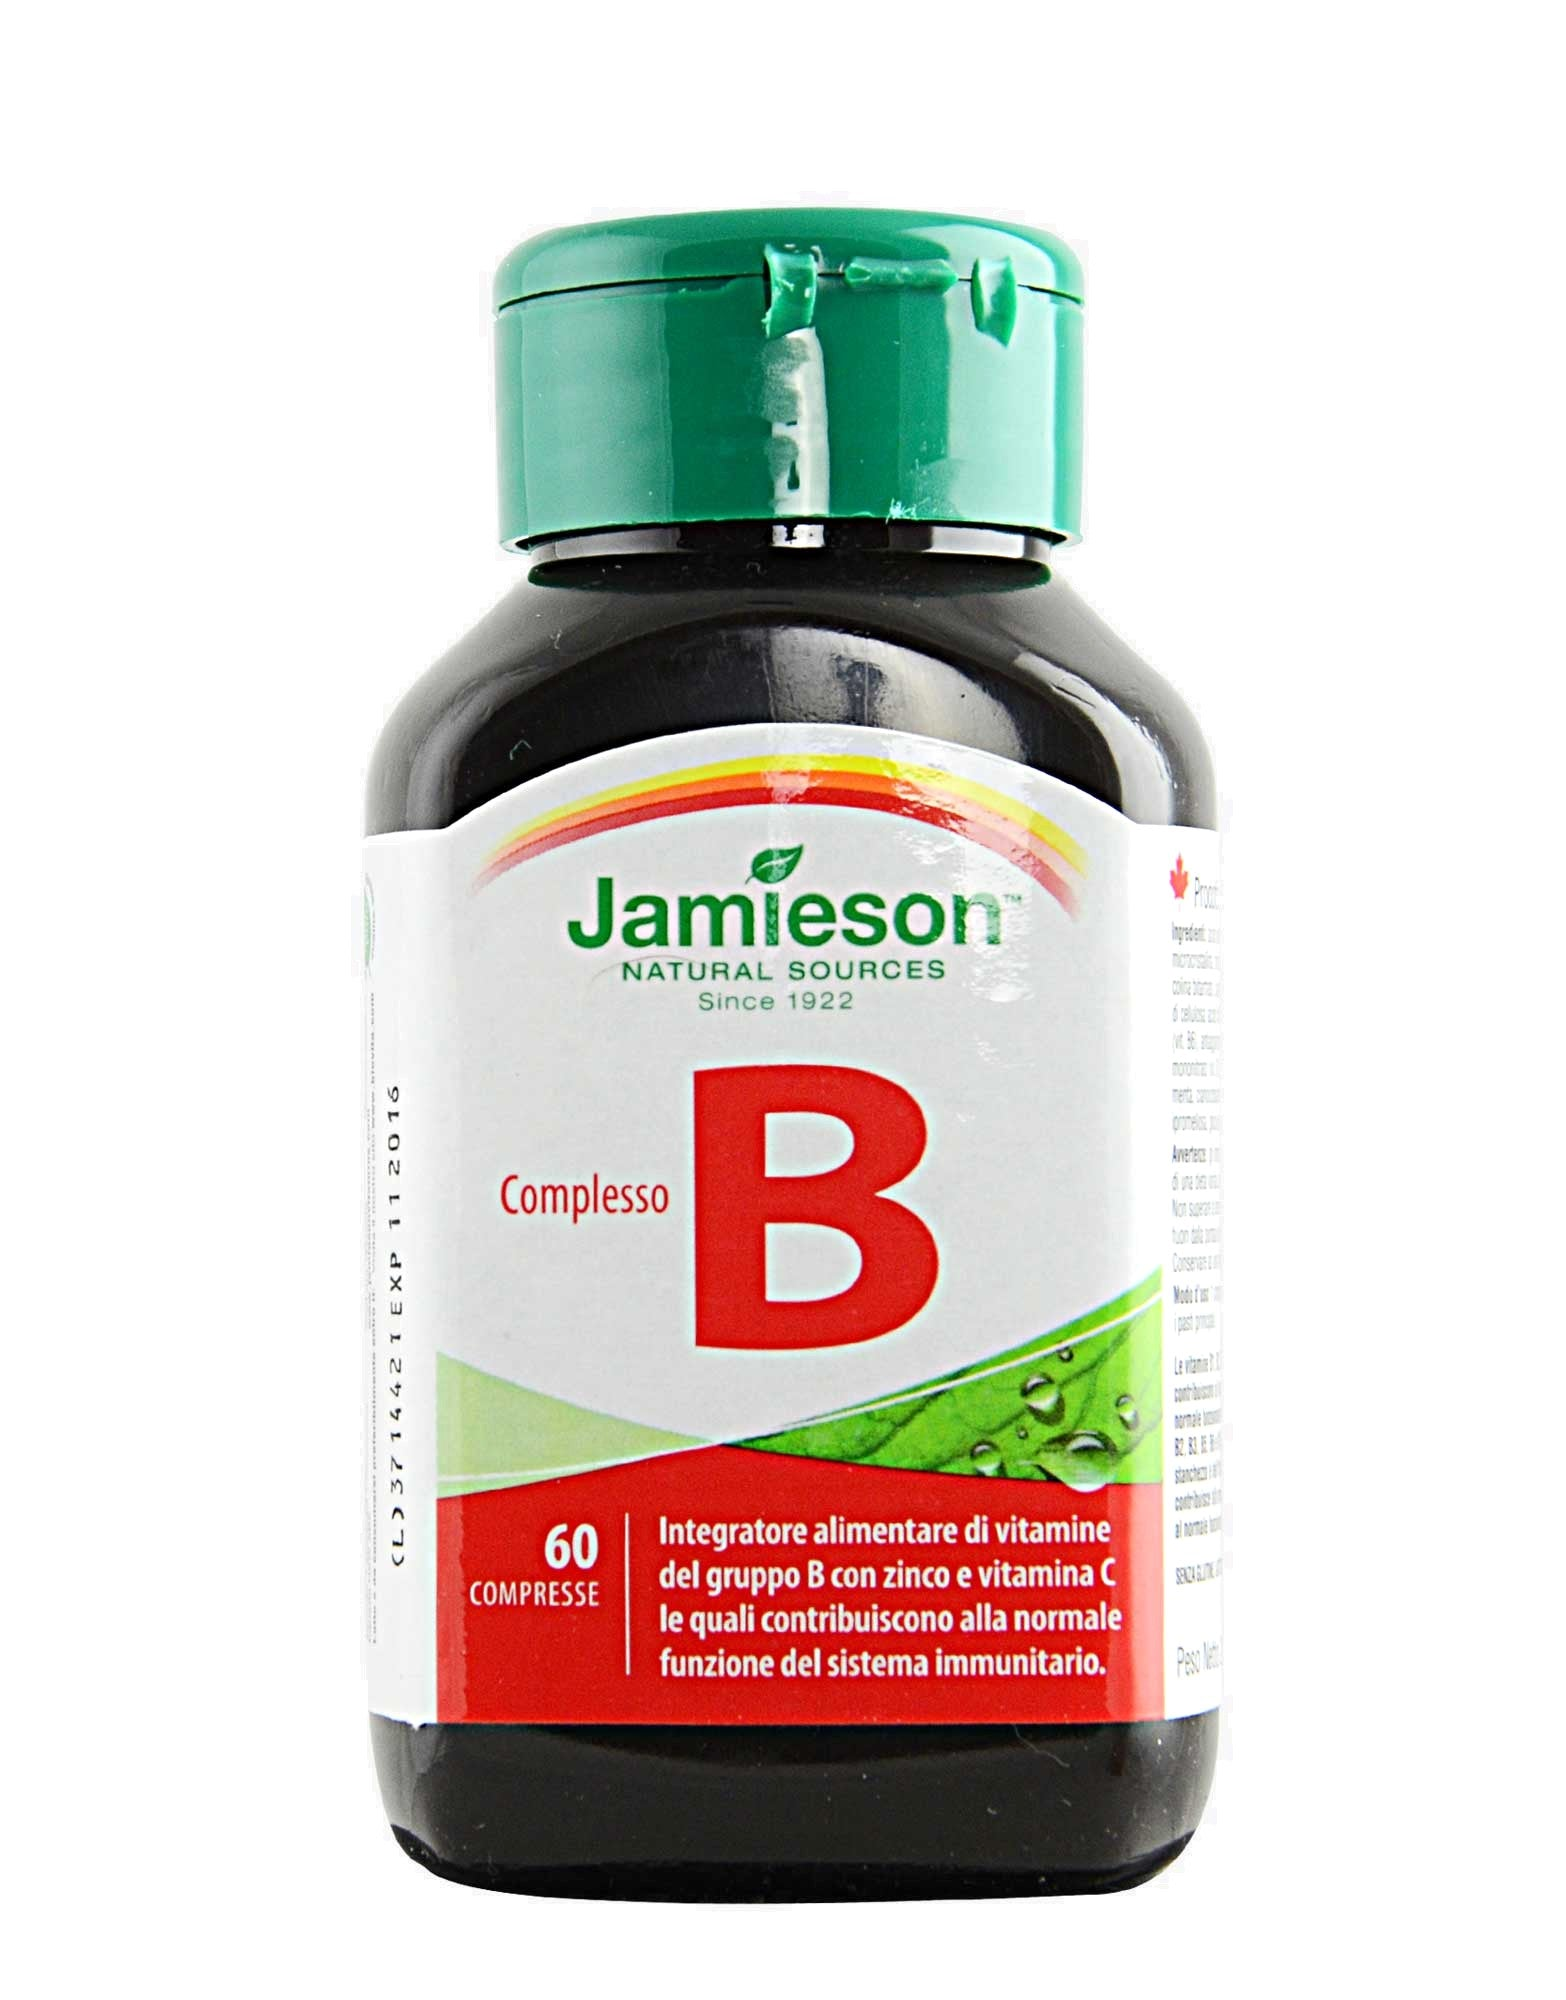 COMPLESSO VIT B 60 cpr JAMIESON - NUTRITION STORE ROMA